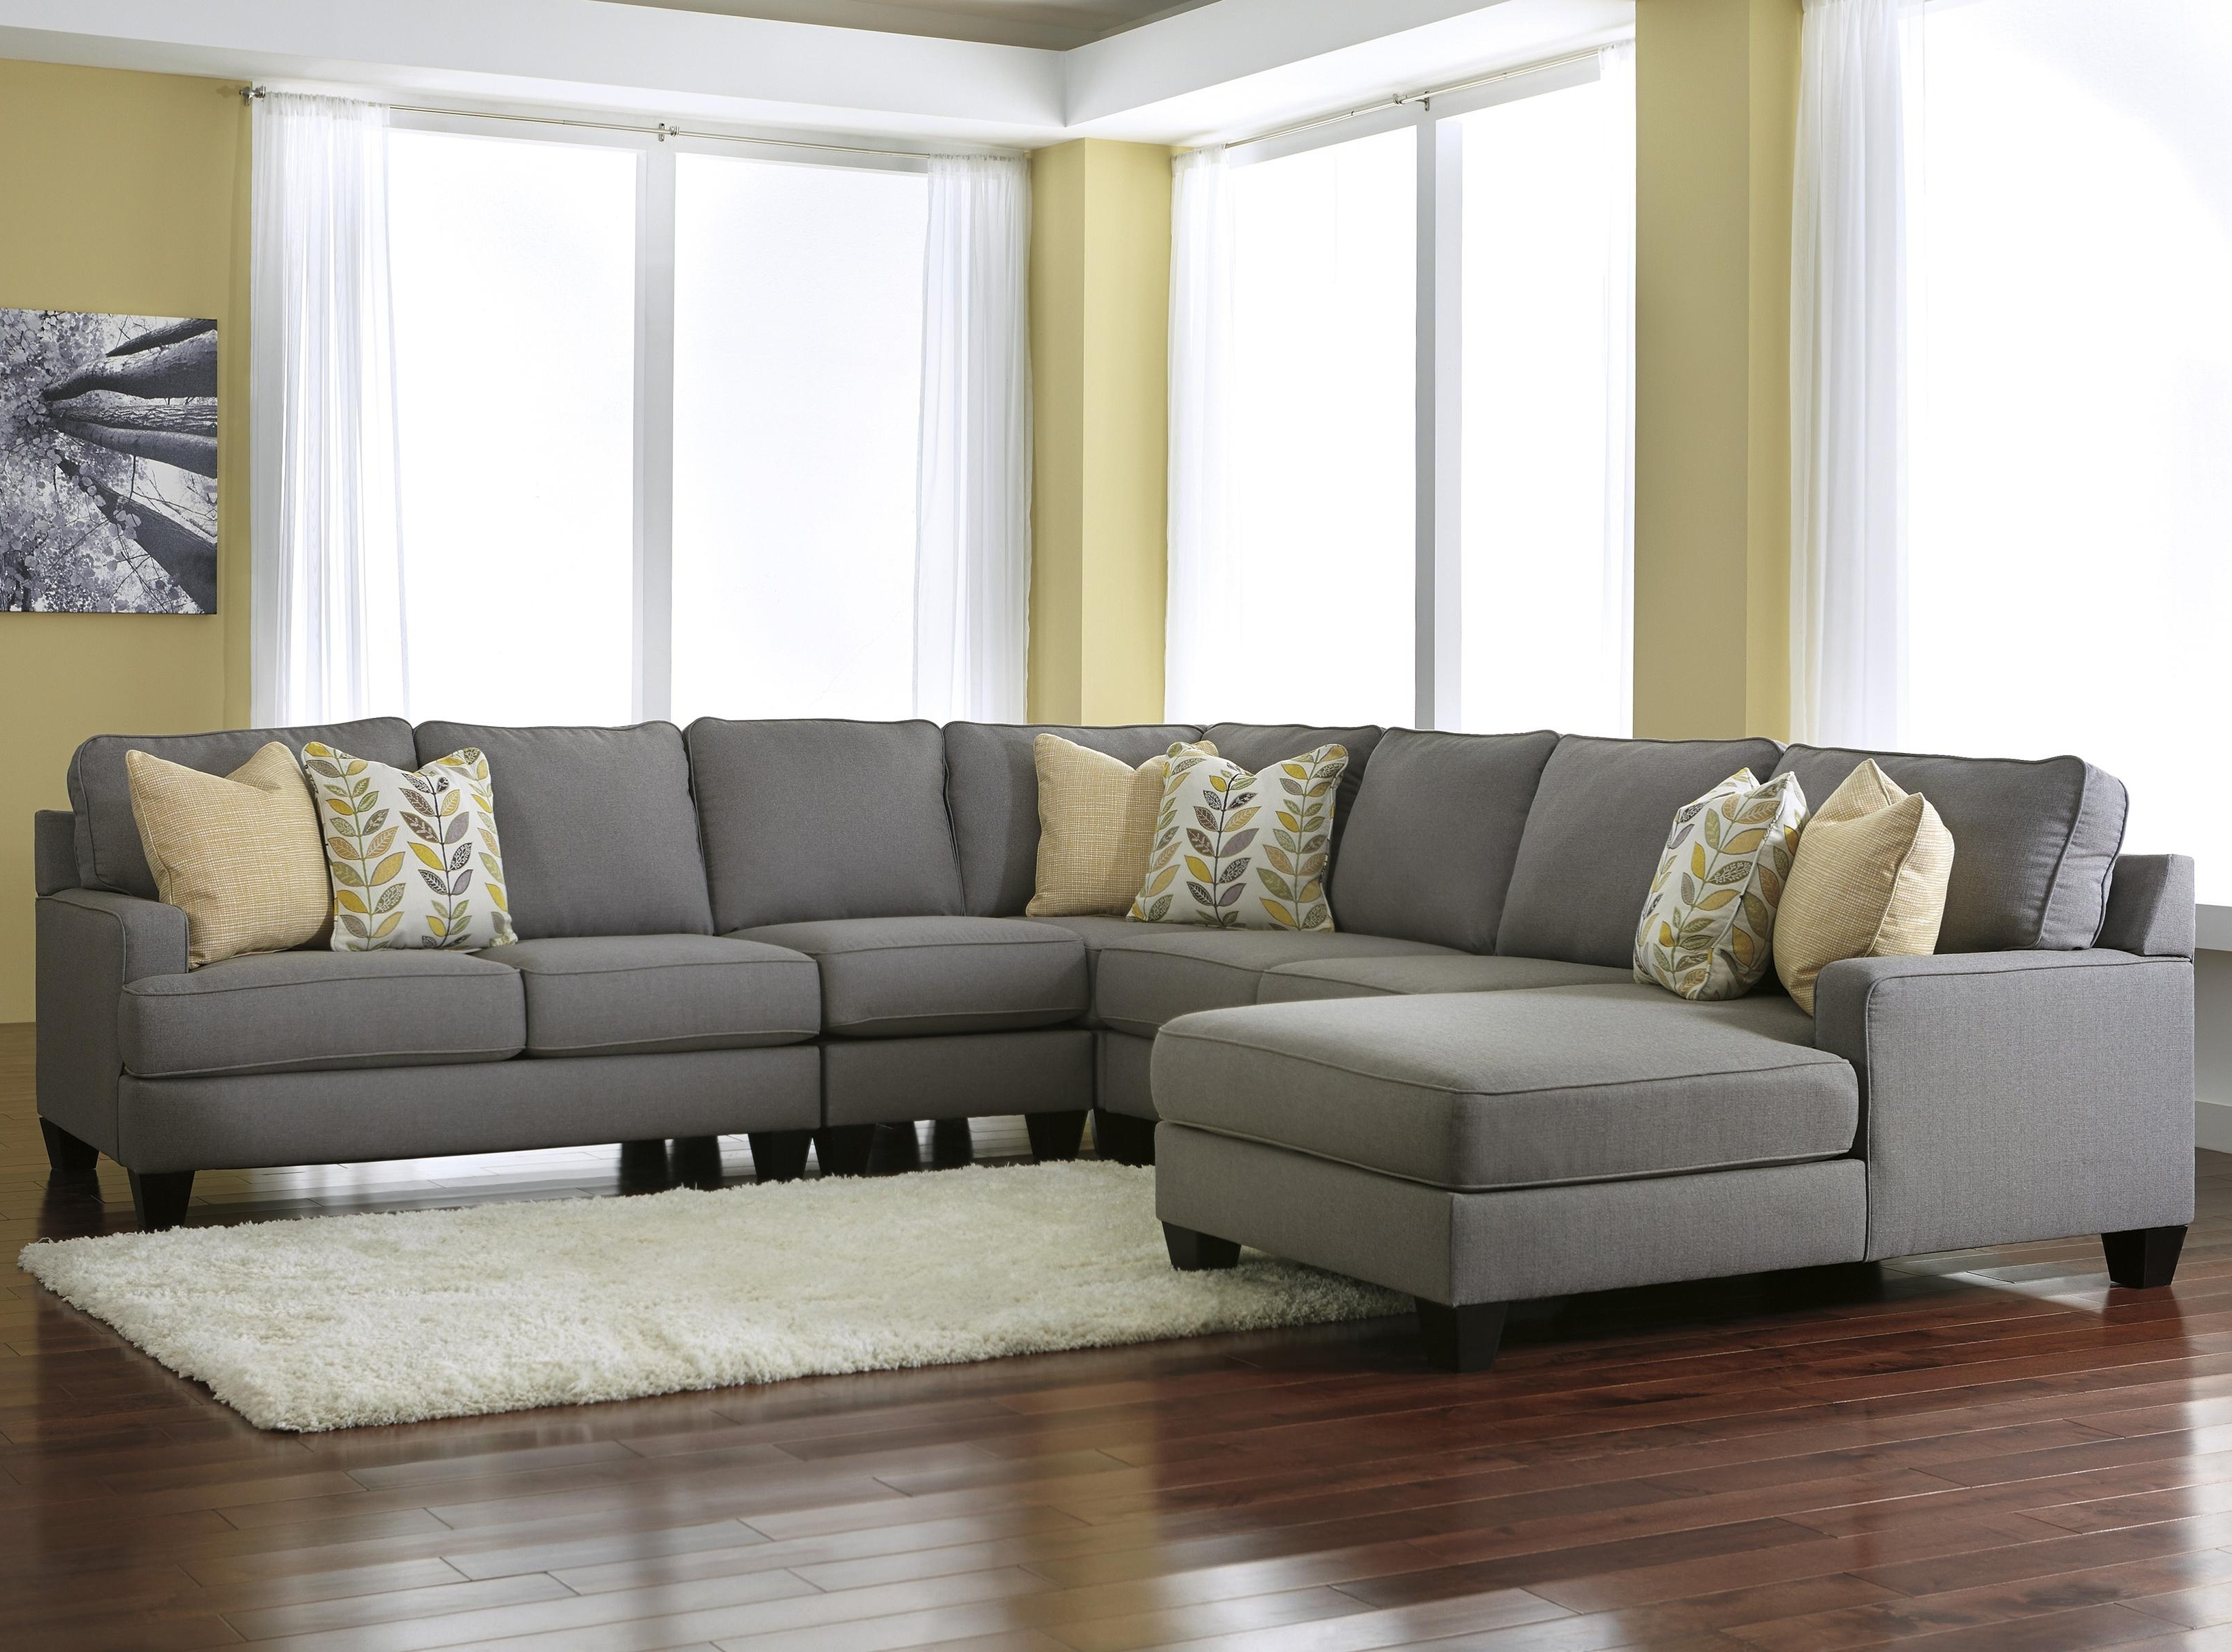 Most Current Johnny Janosik Sectional Sofas With Signature Designashley Chamberly – Alloy Modern 5 Piece (View 15 of 20)